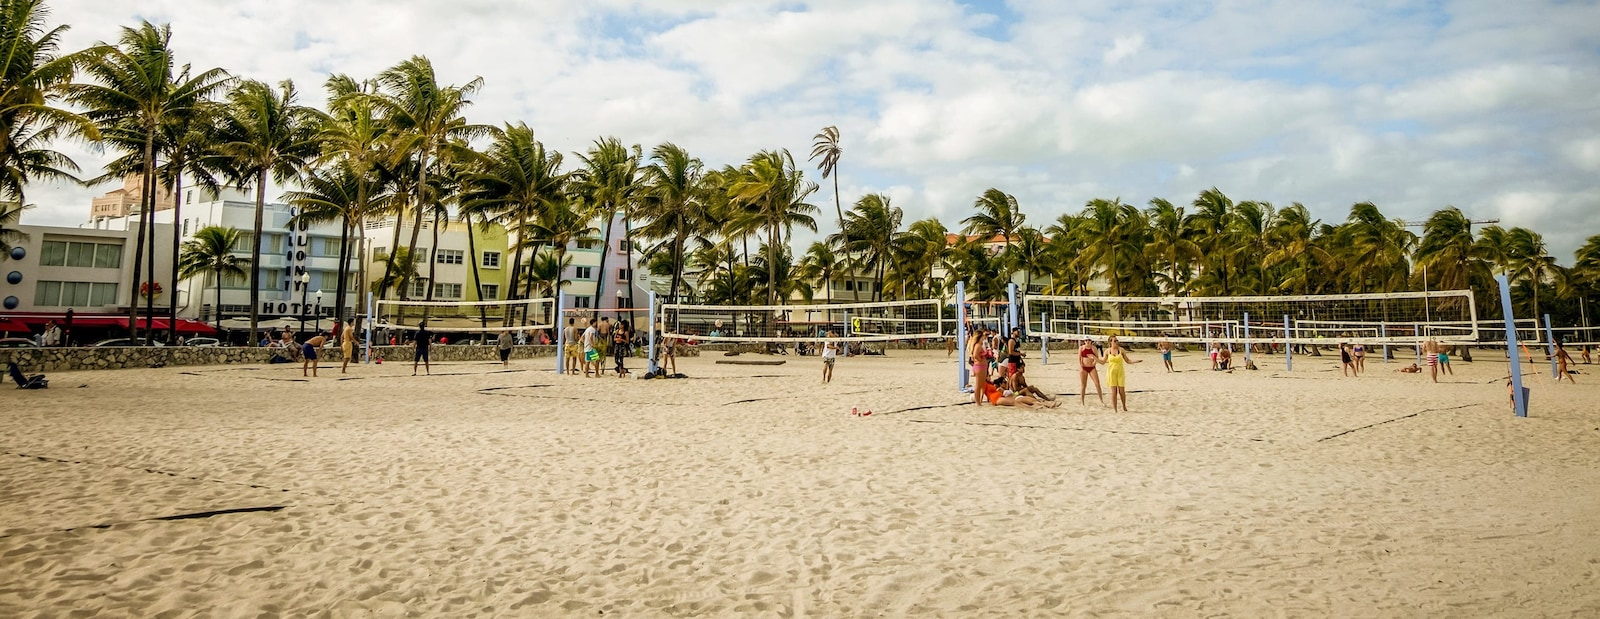 Vacation rentals in Mid-Beach, Miami Beach